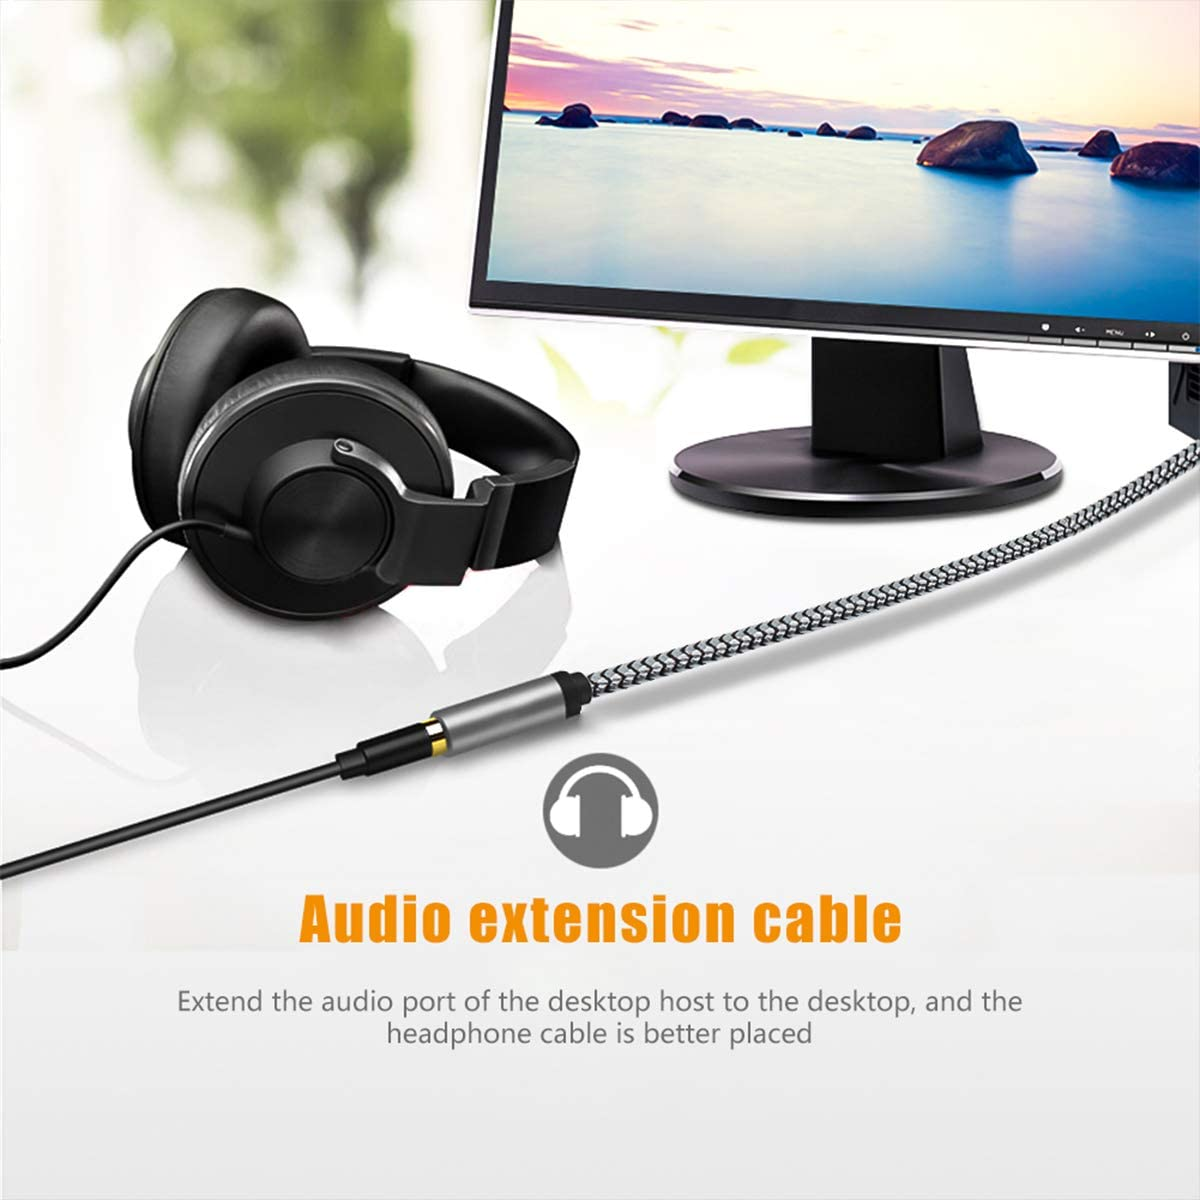 Male to Female Audio Cable 1Ft,Tan QY Male to Female for Phone Headphone Conversion Cord 3.5mm 4 Pole Audio Adapter for Tablet//PC// PS4 and More 1Ft, Silver